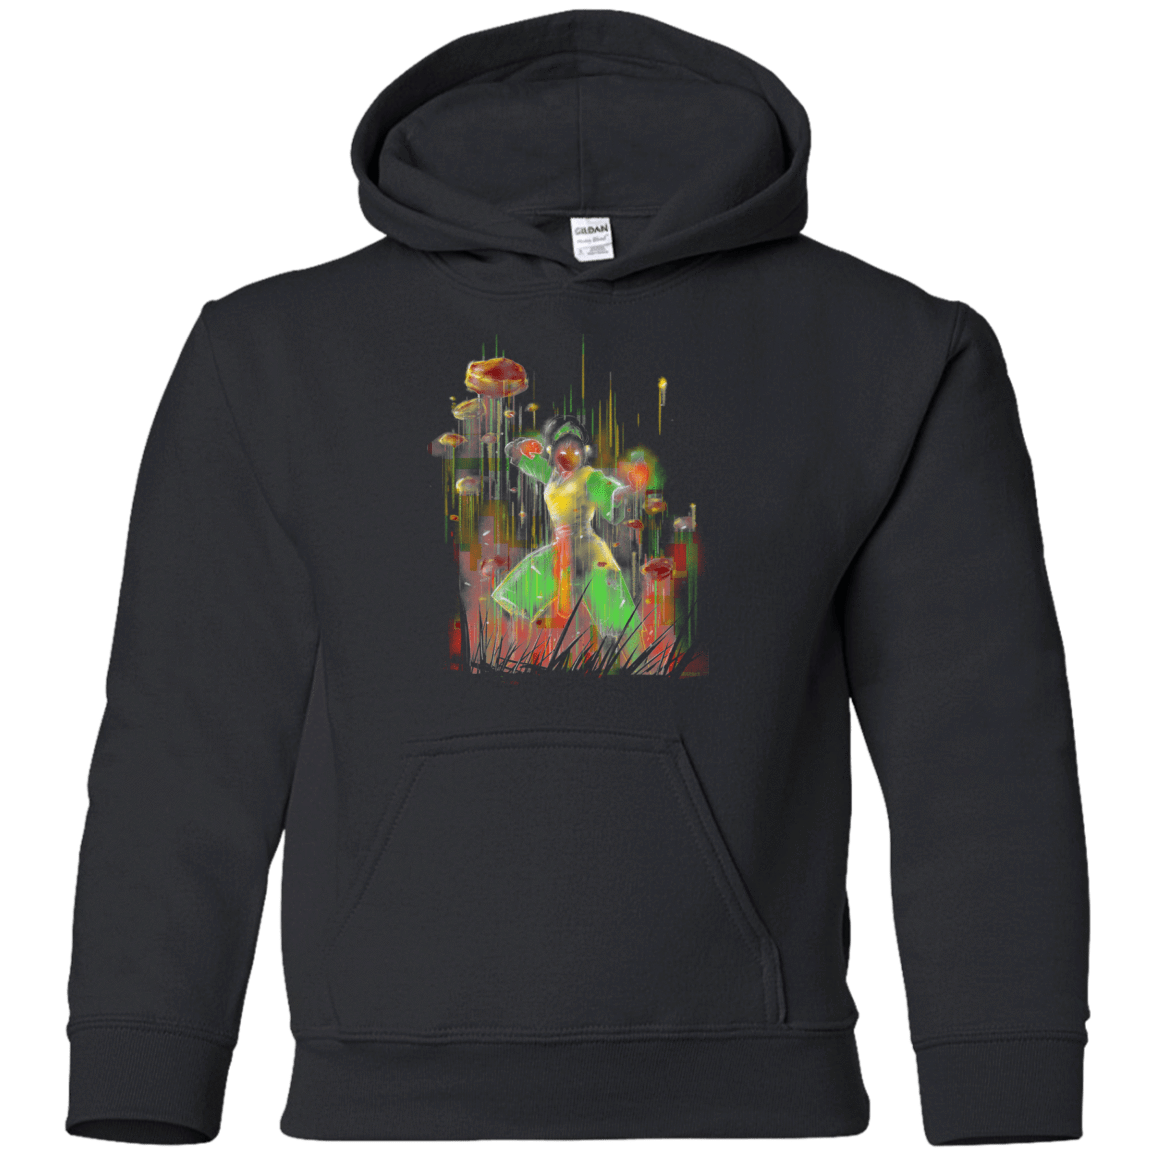 Sweatshirts Black / YS She Rocks Youth Hoodie